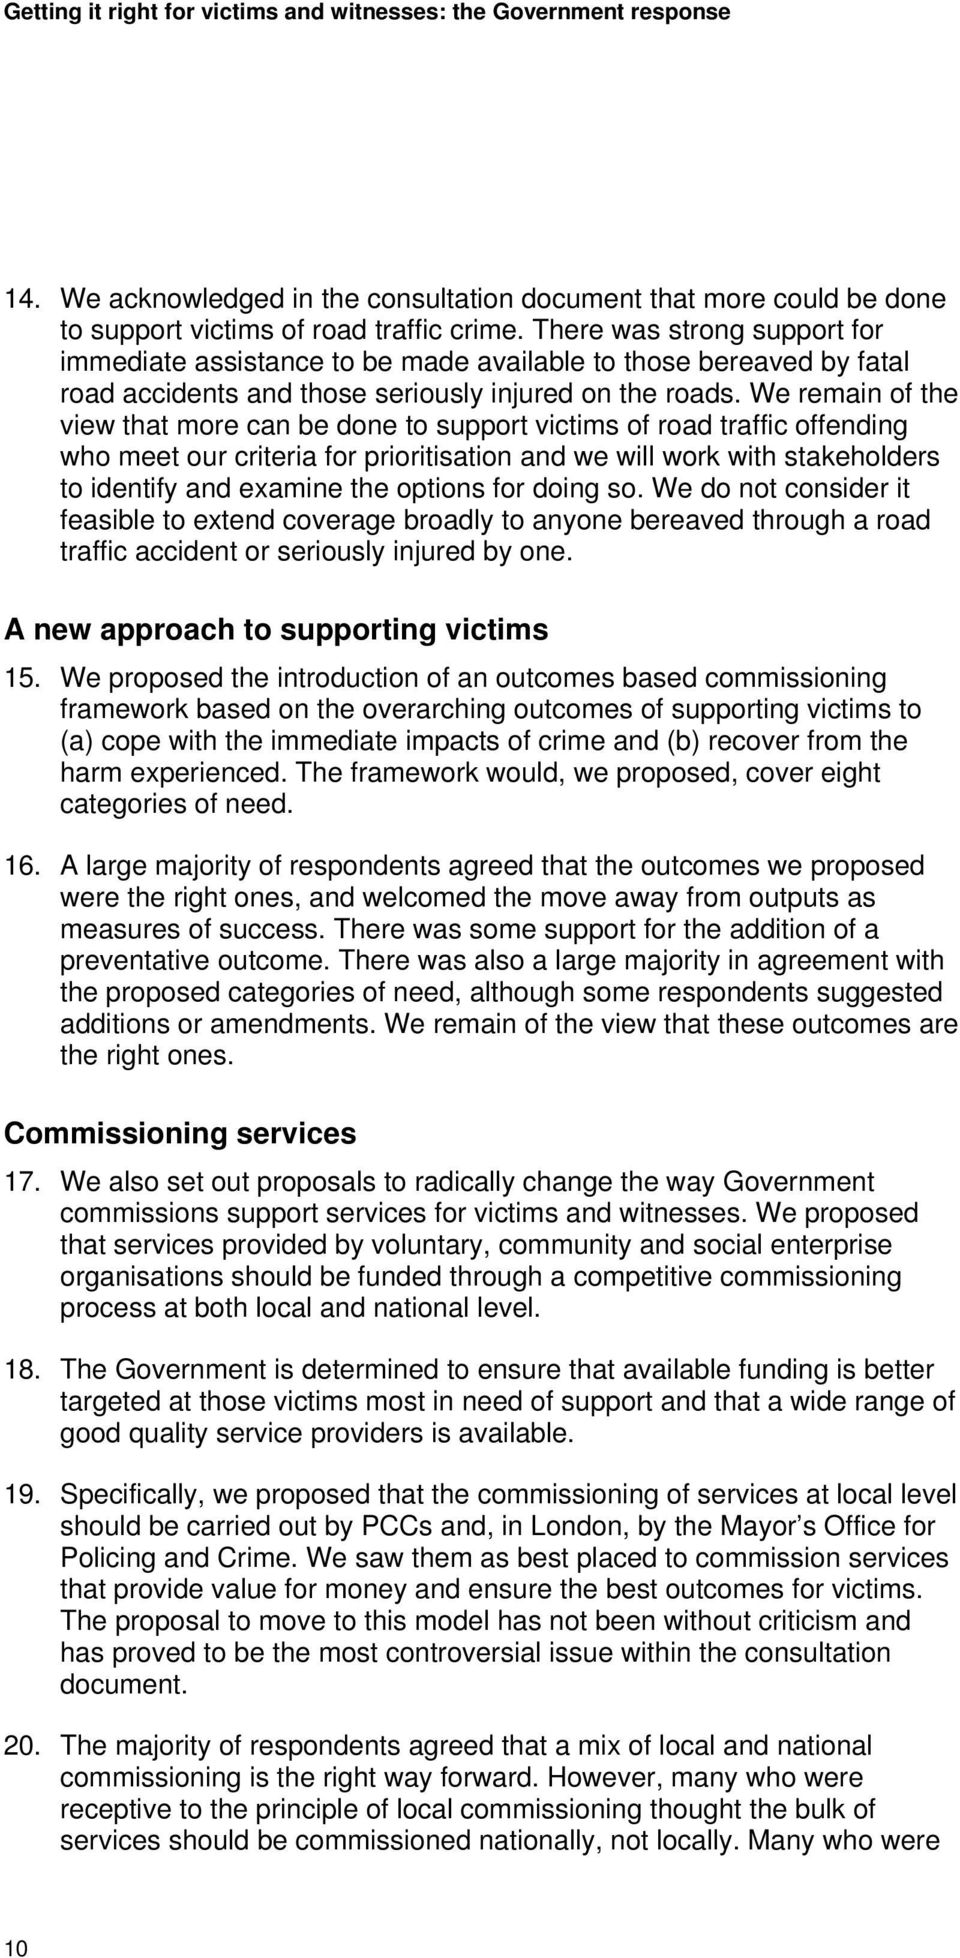 We remain of the view that more can be done to support victims of road traffic offending who meet our criteria for prioritisation and we will work with stakeholders to identify and examine the